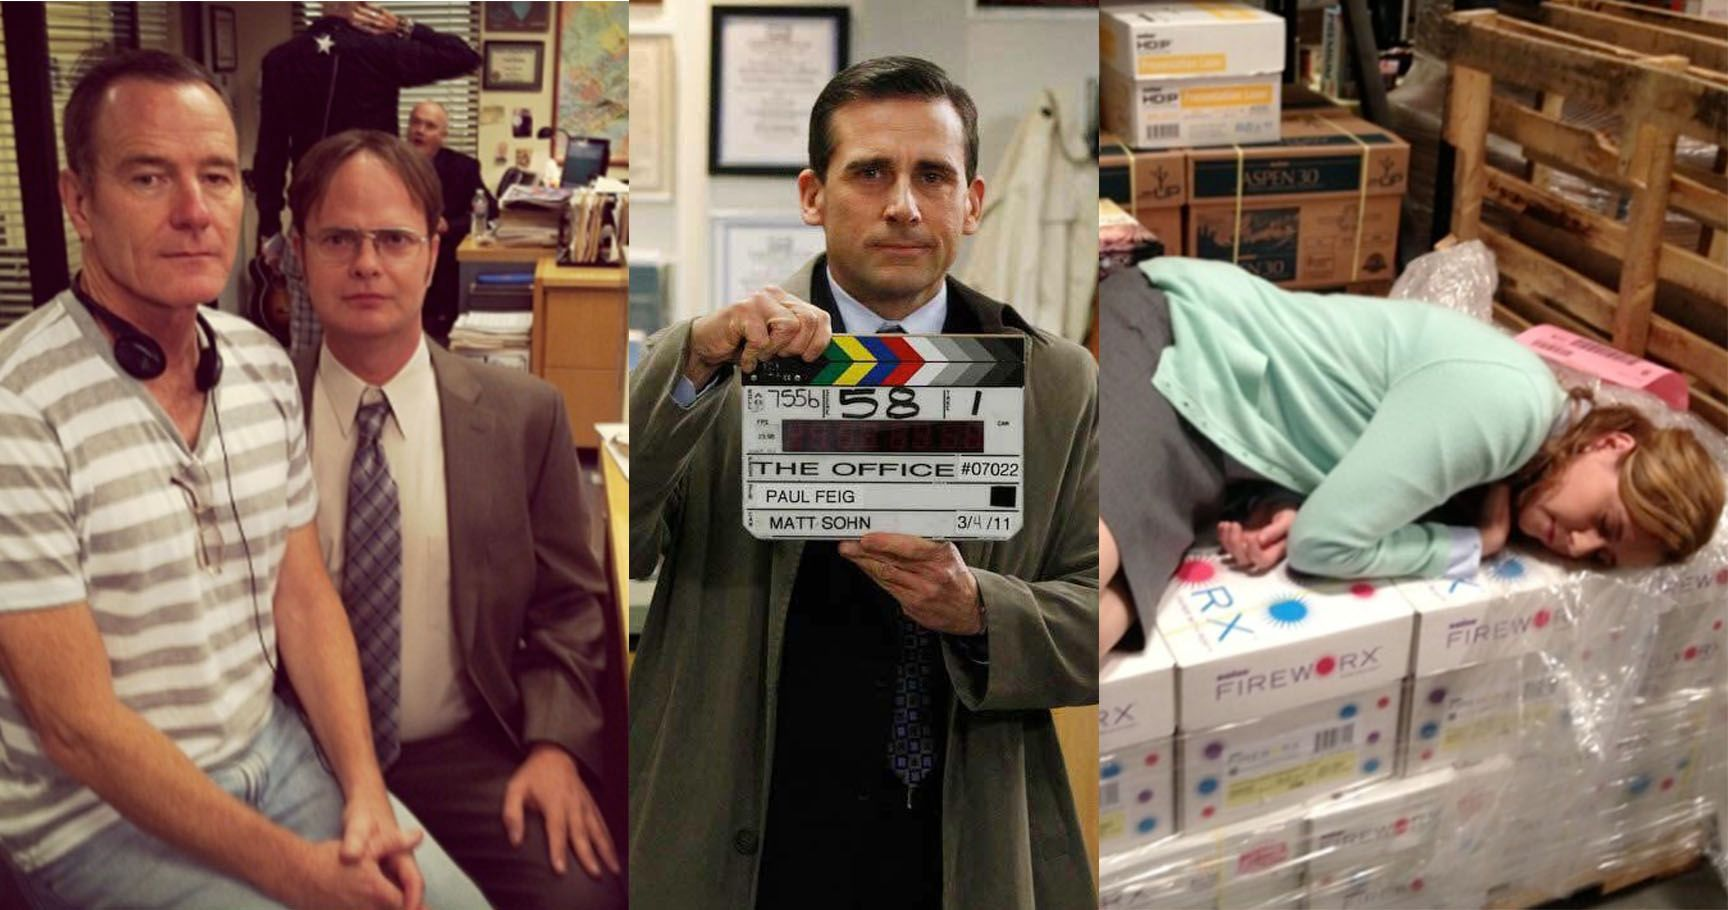 Behind The Scenes Photos From Office That Ll Change How You View Show